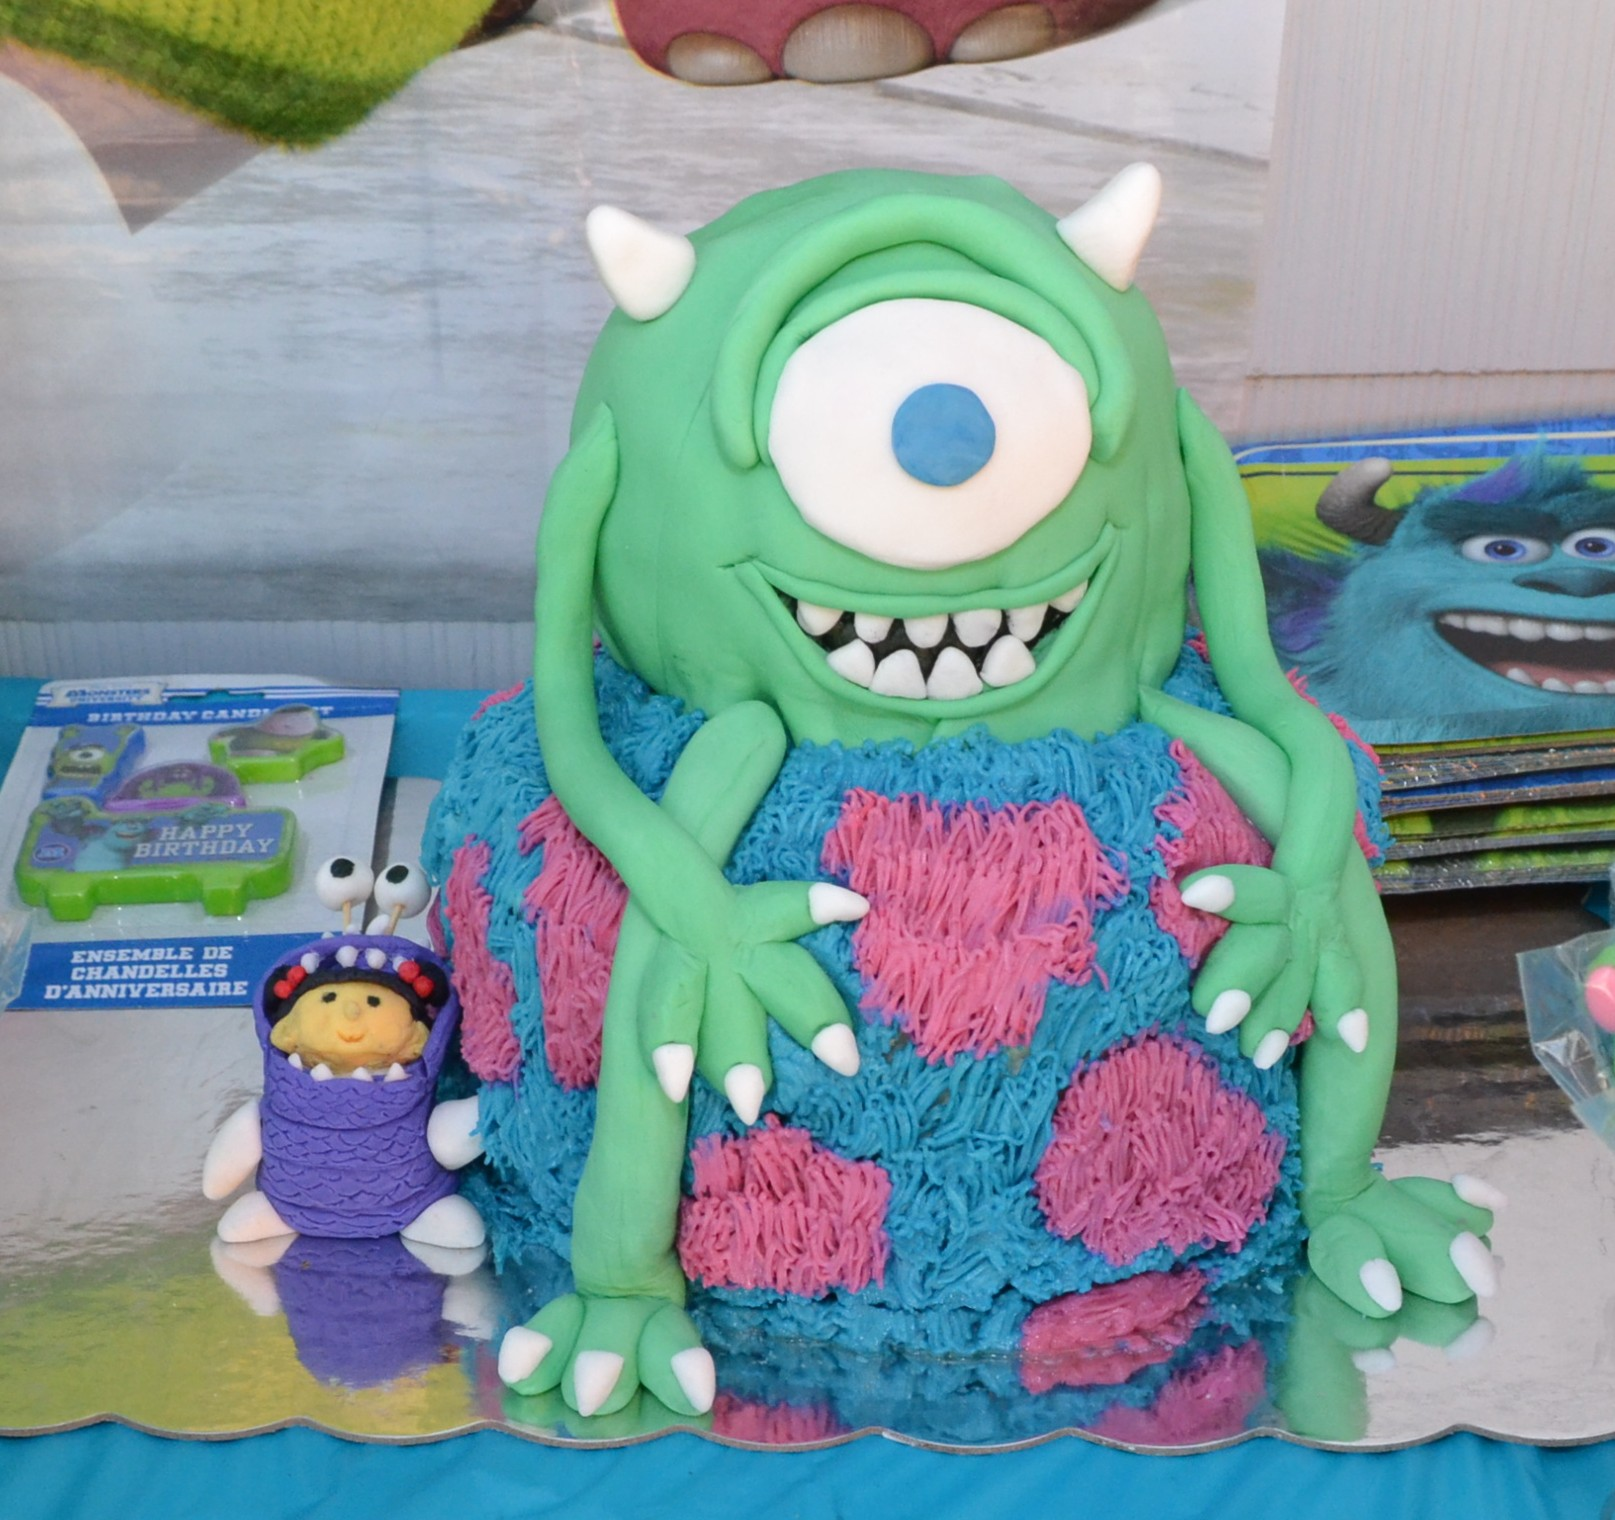 Pleasing Monsters Inc Birthday Cake Do It Yourself Personalised Birthday Cards Veneteletsinfo